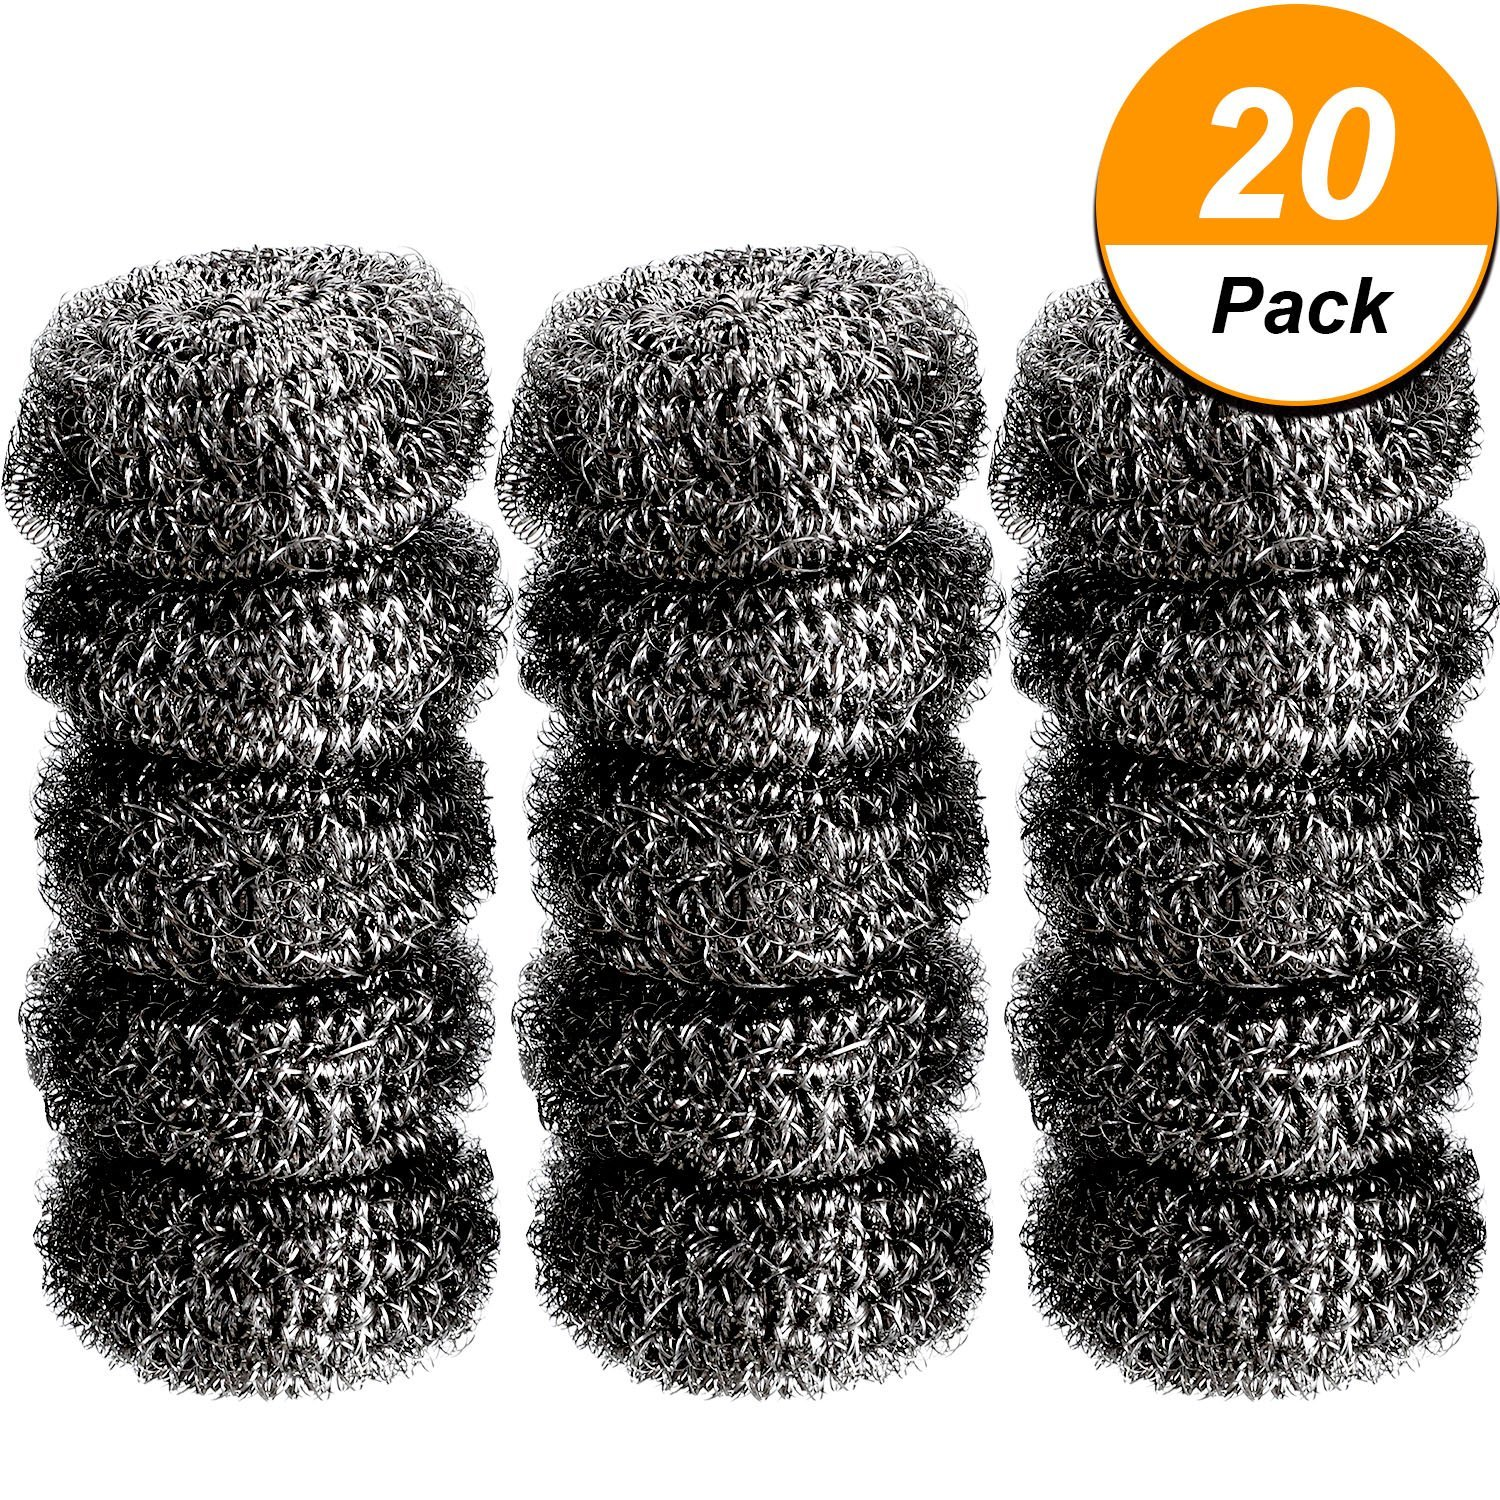 Boao 20 Pack Stainless Steel Scourer Metal Scourer Stainless Steel Sponge Scourer Pads for Home Kitchen Greasy Dirt Cleaning